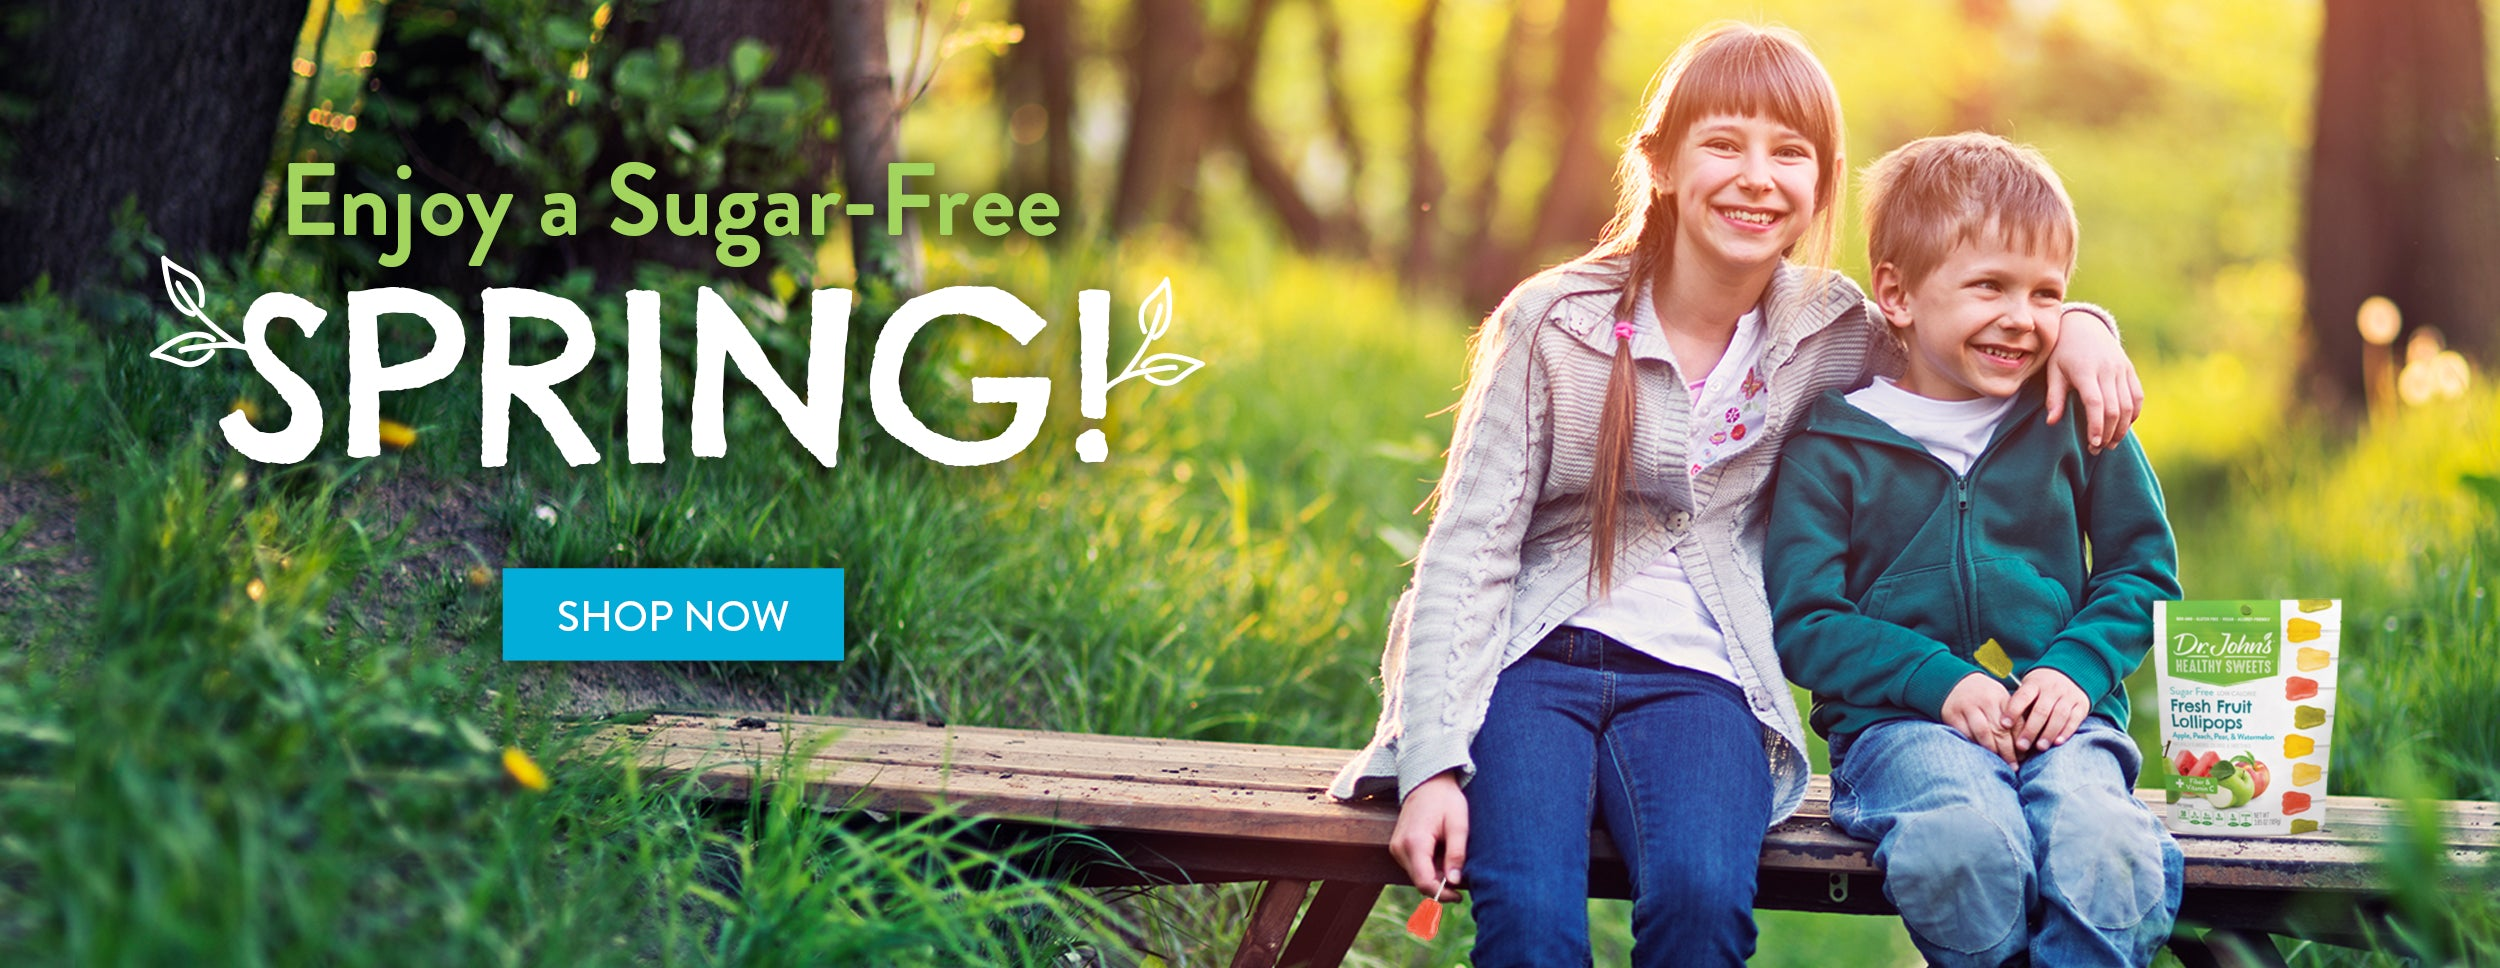 Enjoy a Sugar-Free Spring! Shop Now.